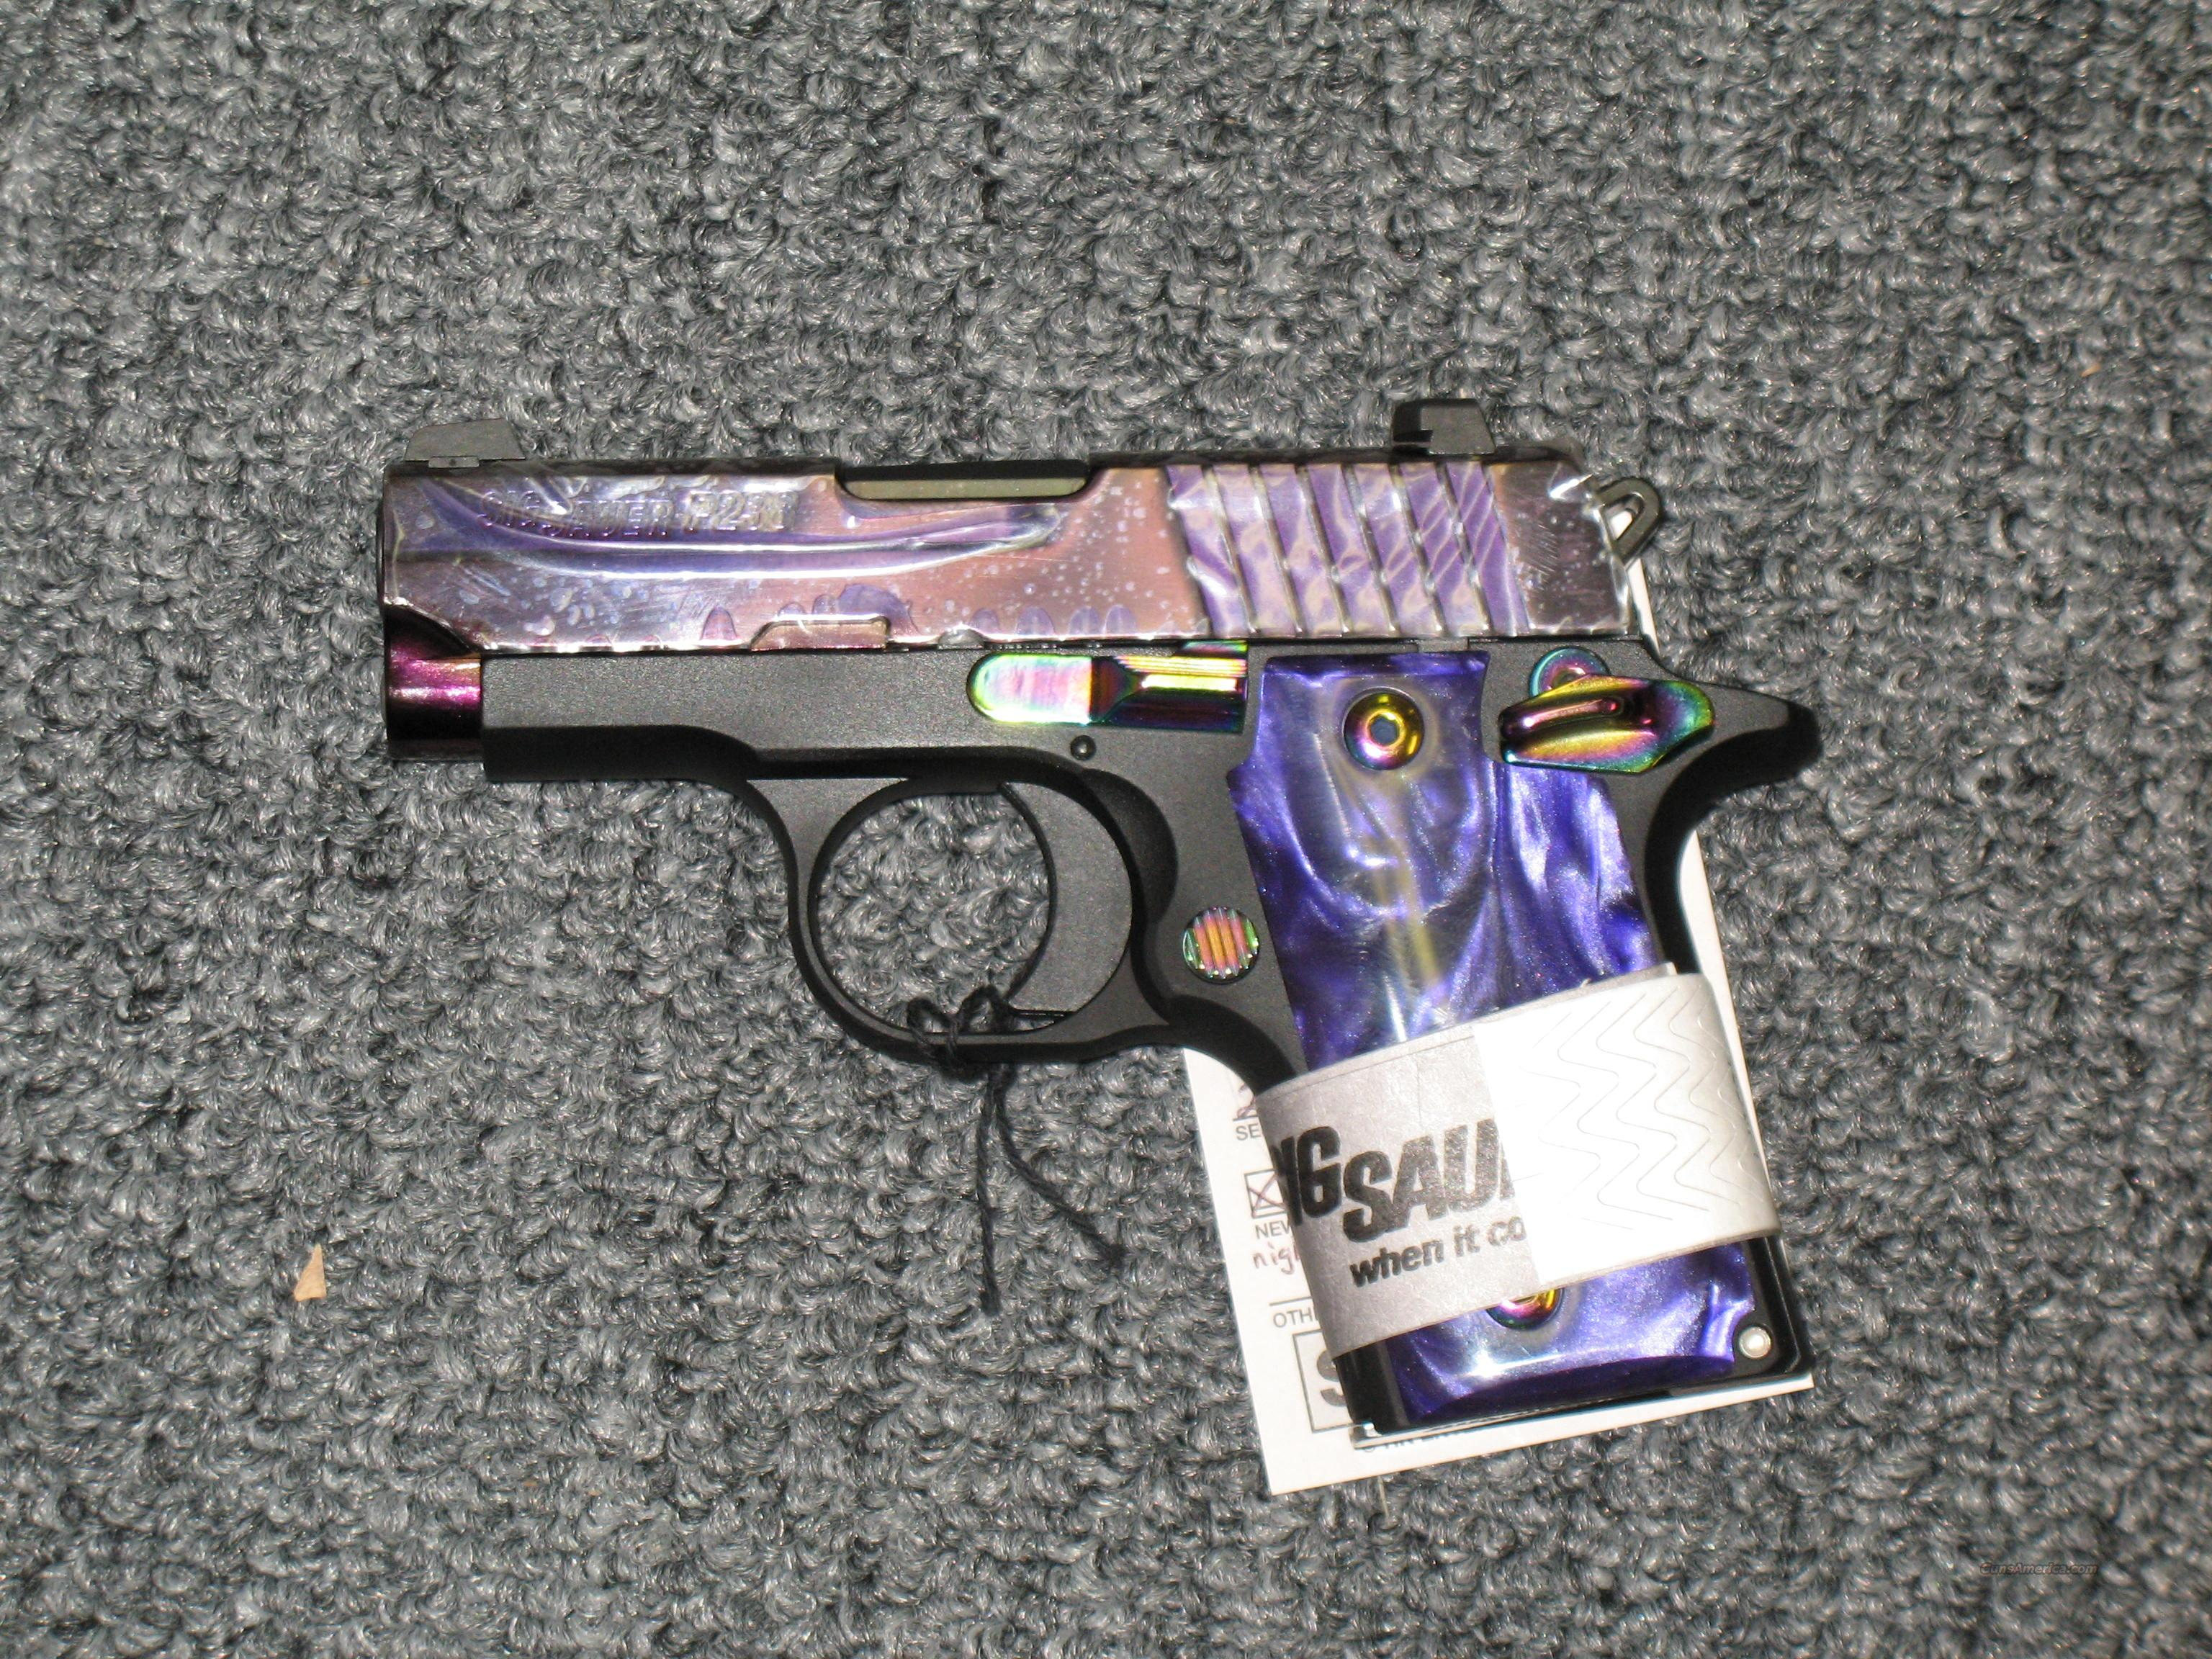 P238 w/night sights, purple grips and slide  Guns > Pistols > Sig - Sauer/Sigarms Pistols > Other